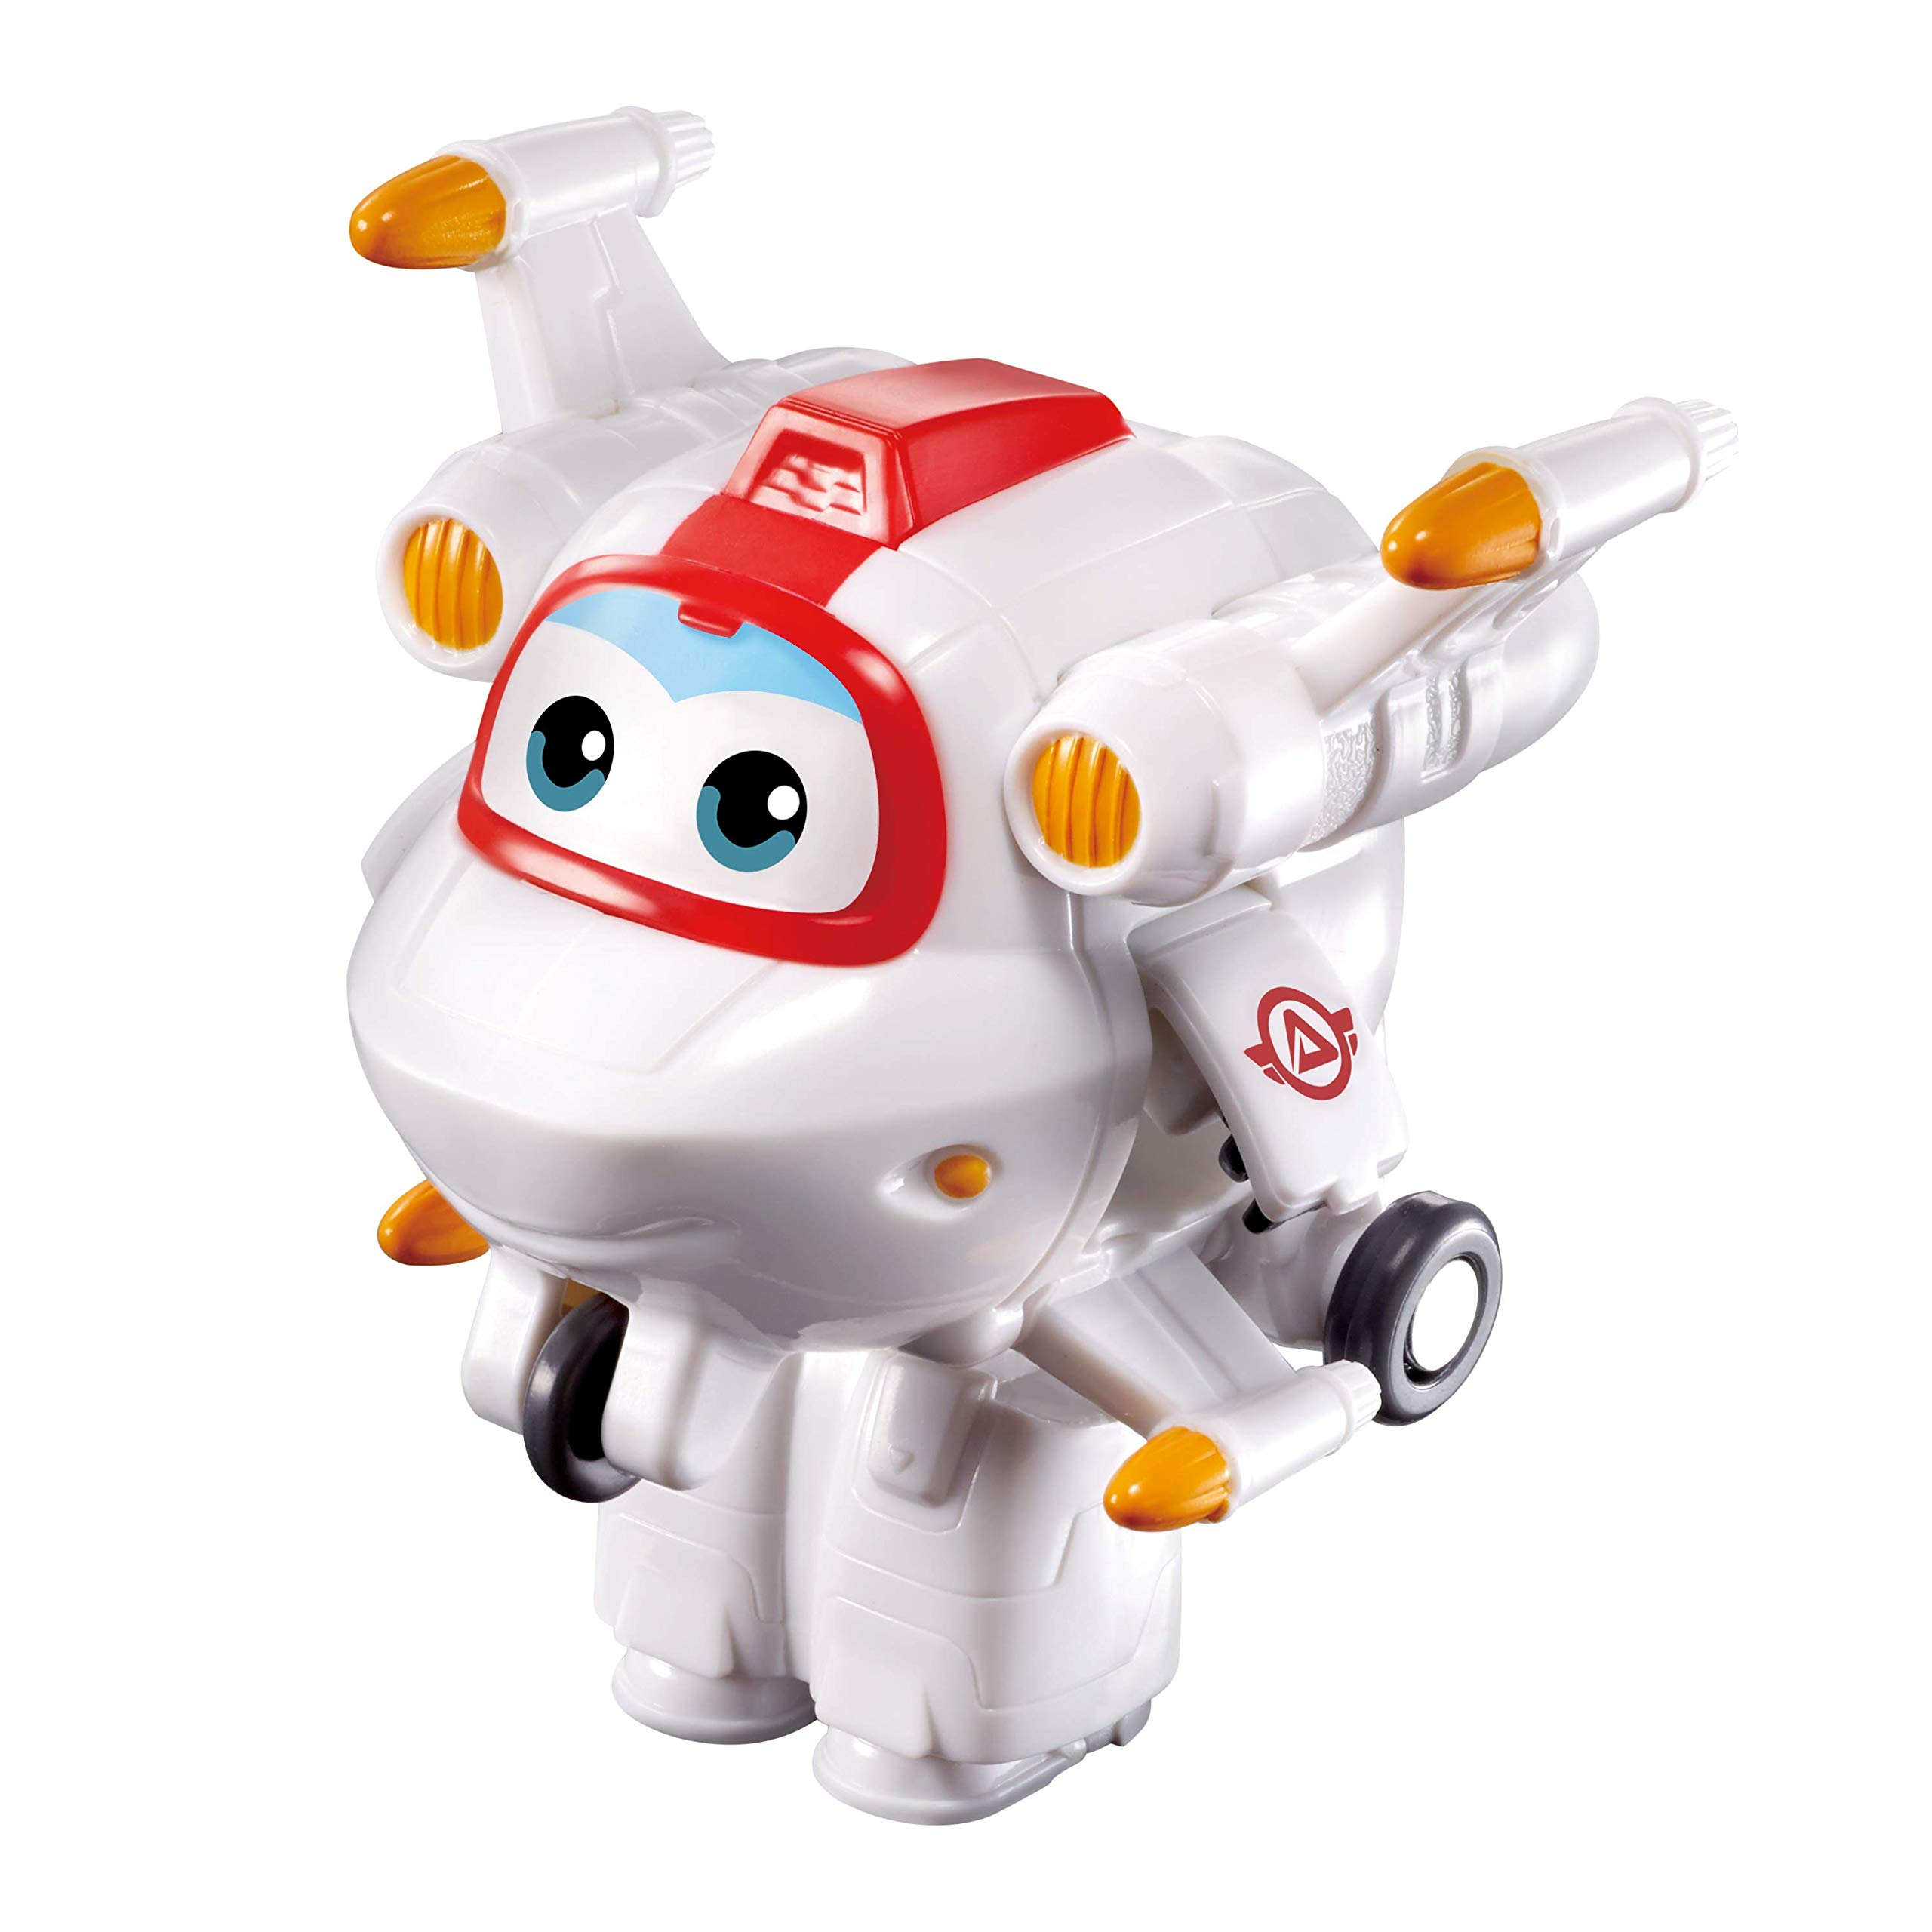 Super Wings US720040G Transforming Toy Figures, Rescue Dizzy, Zoey, Astra & Astro, 2'' Scale by Super Wings